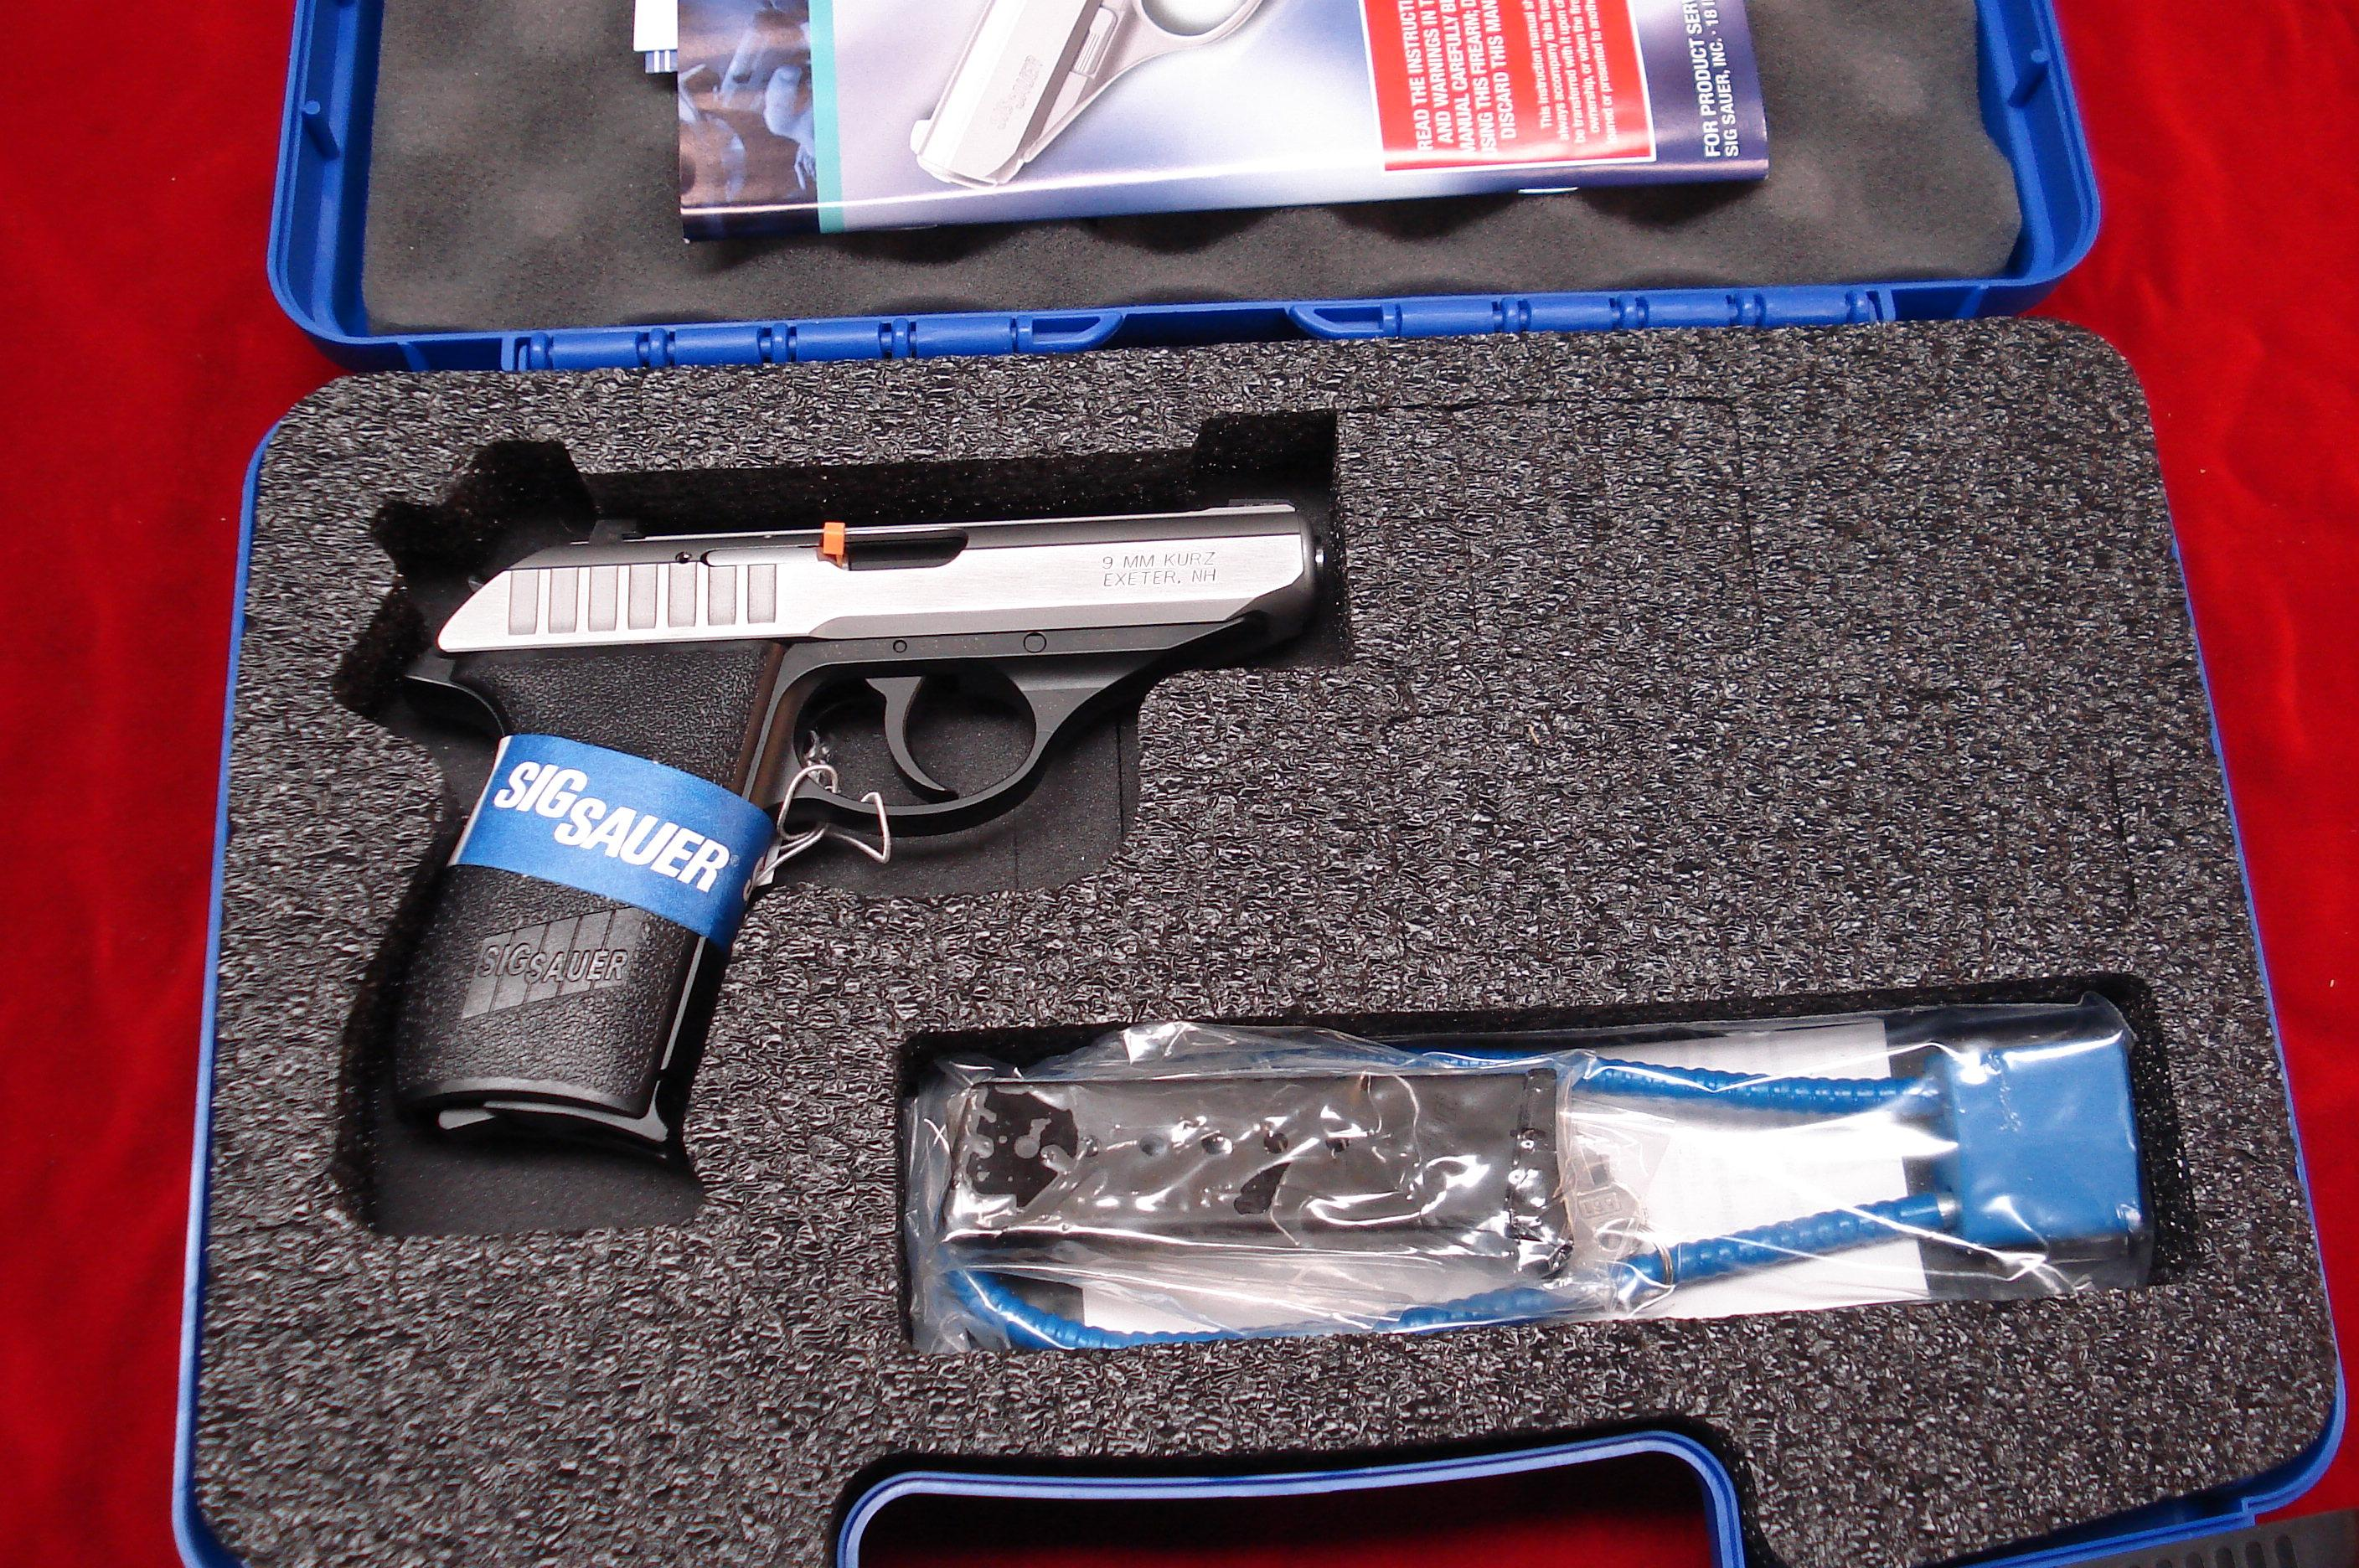 SIG P232 STAINLESS DUO-TONE 380CAL. NIGHT SIGHTS NEW   Guns > Pistols > Sig - Sauer/Sigarms Pistols > Other